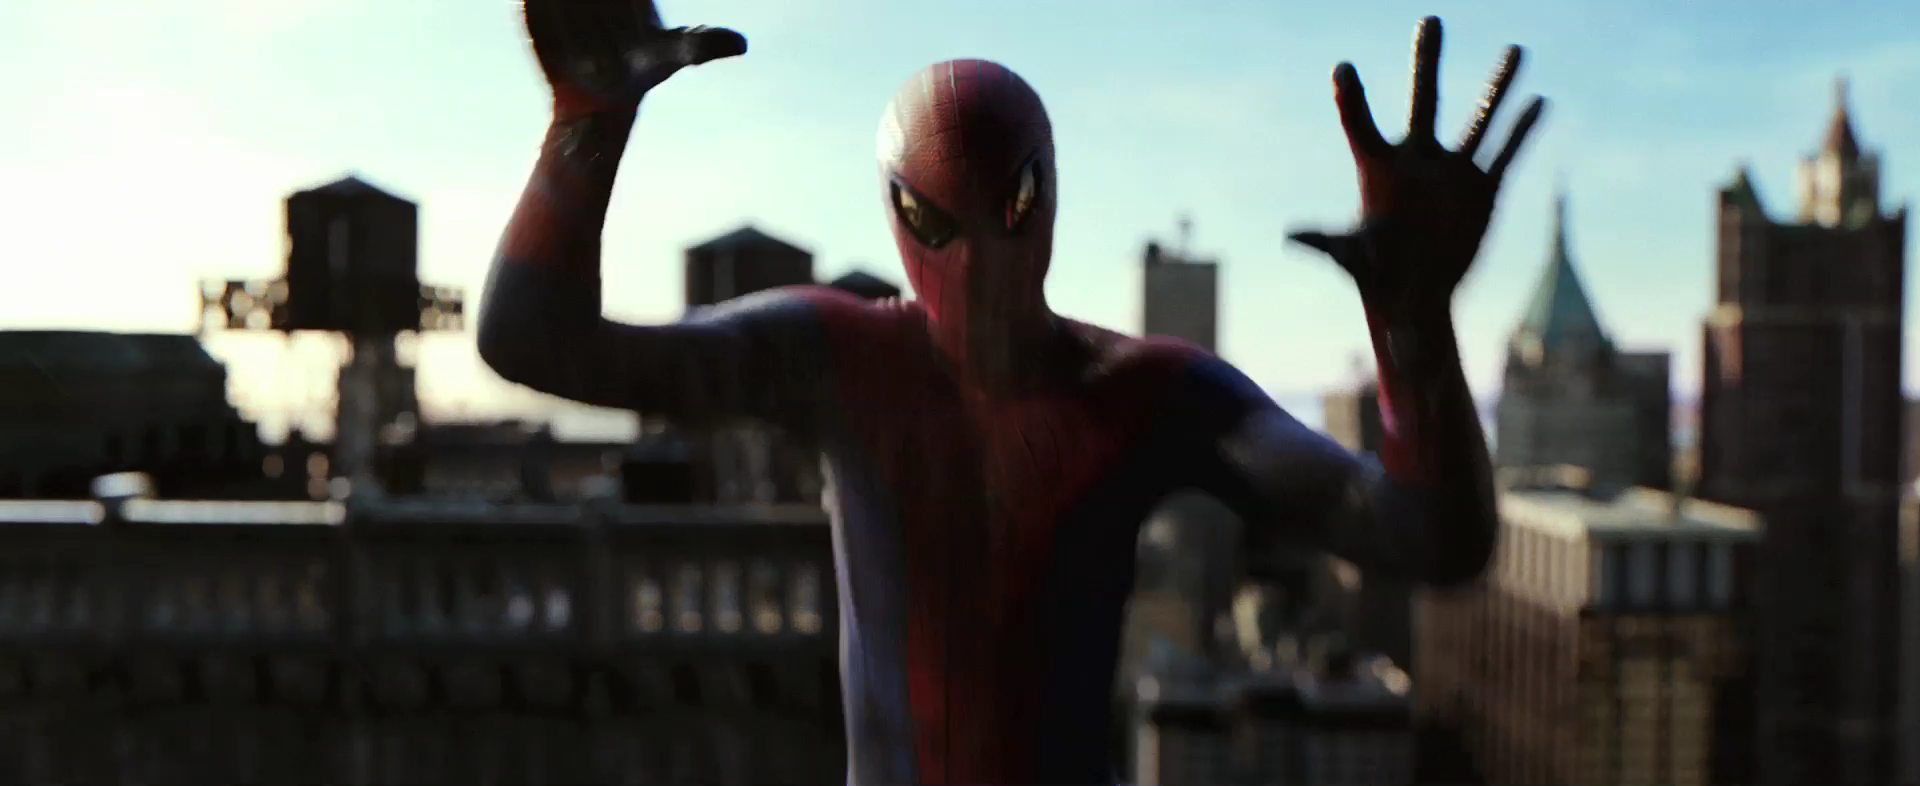 http://images4.fanpop.com/image/photos/23900000/The-Amazing-Spider-Man-Teaser-Trailer-spider-man-23963877-1920-786.jpg